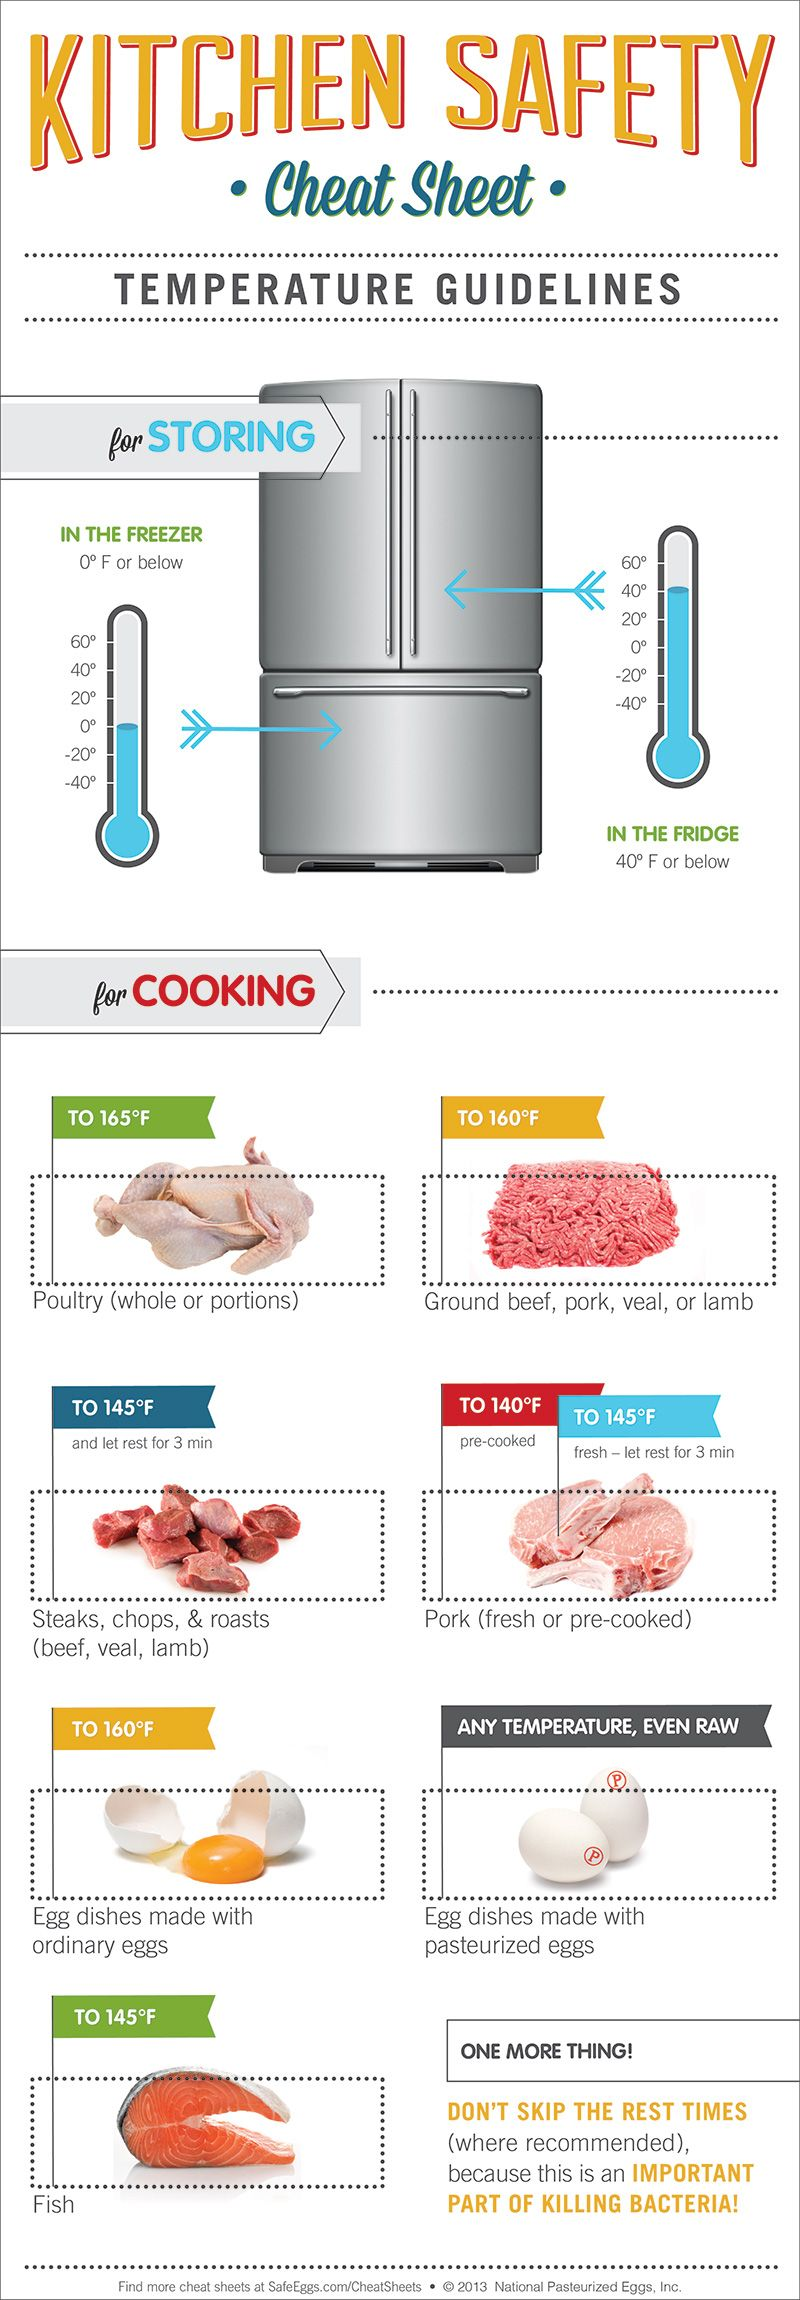 Food Temperature Guidelines For Storing And Cooking